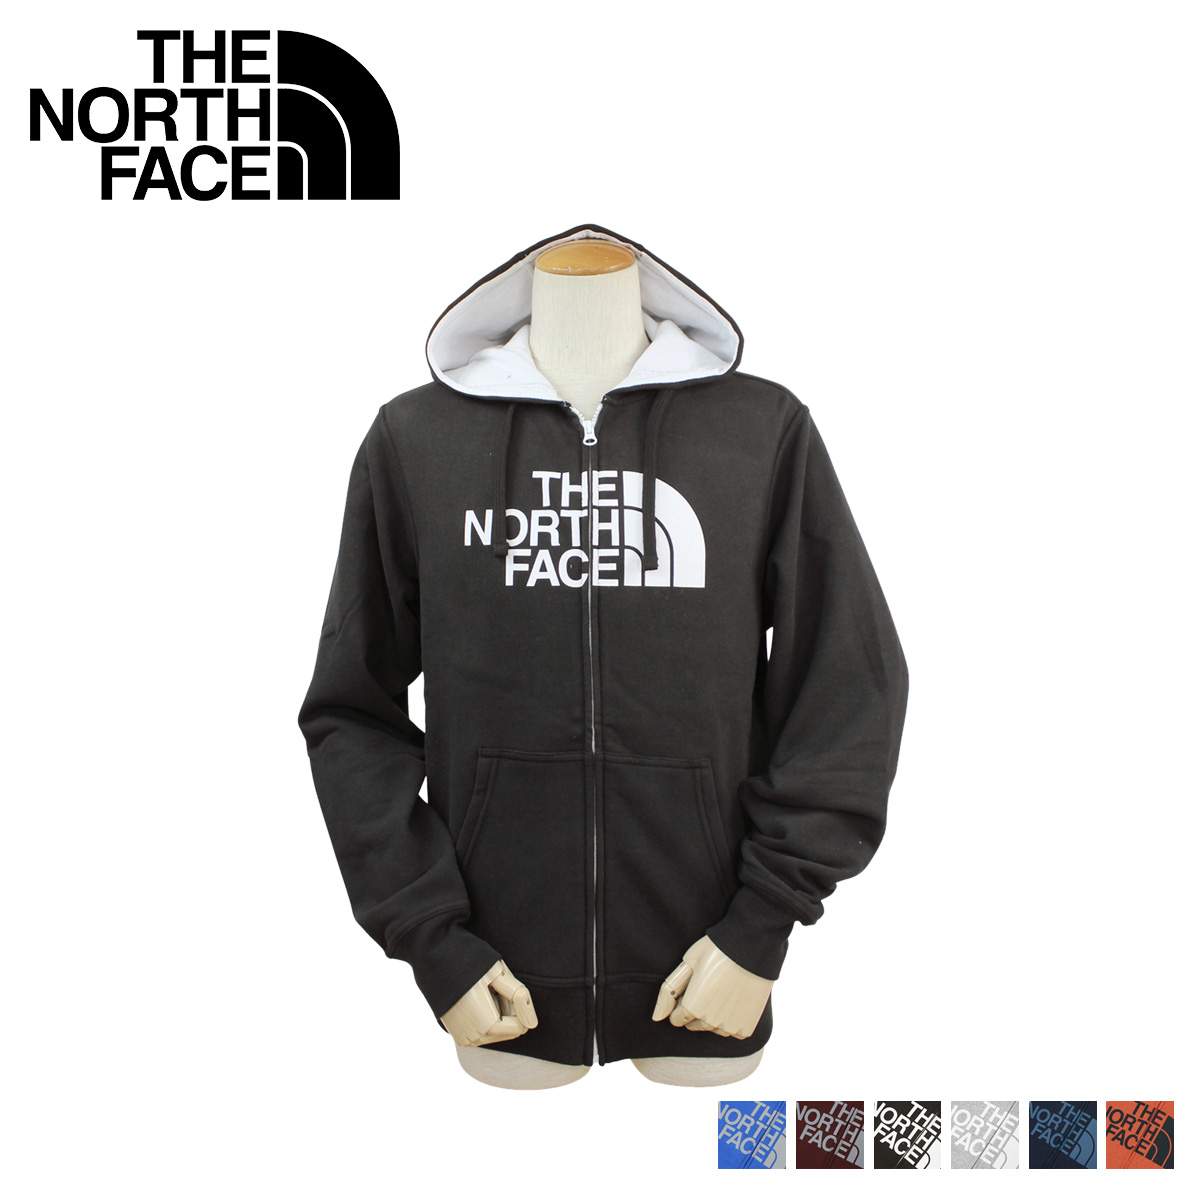 073b39ccb get north face grey zip up hoodie a45ec 2981f